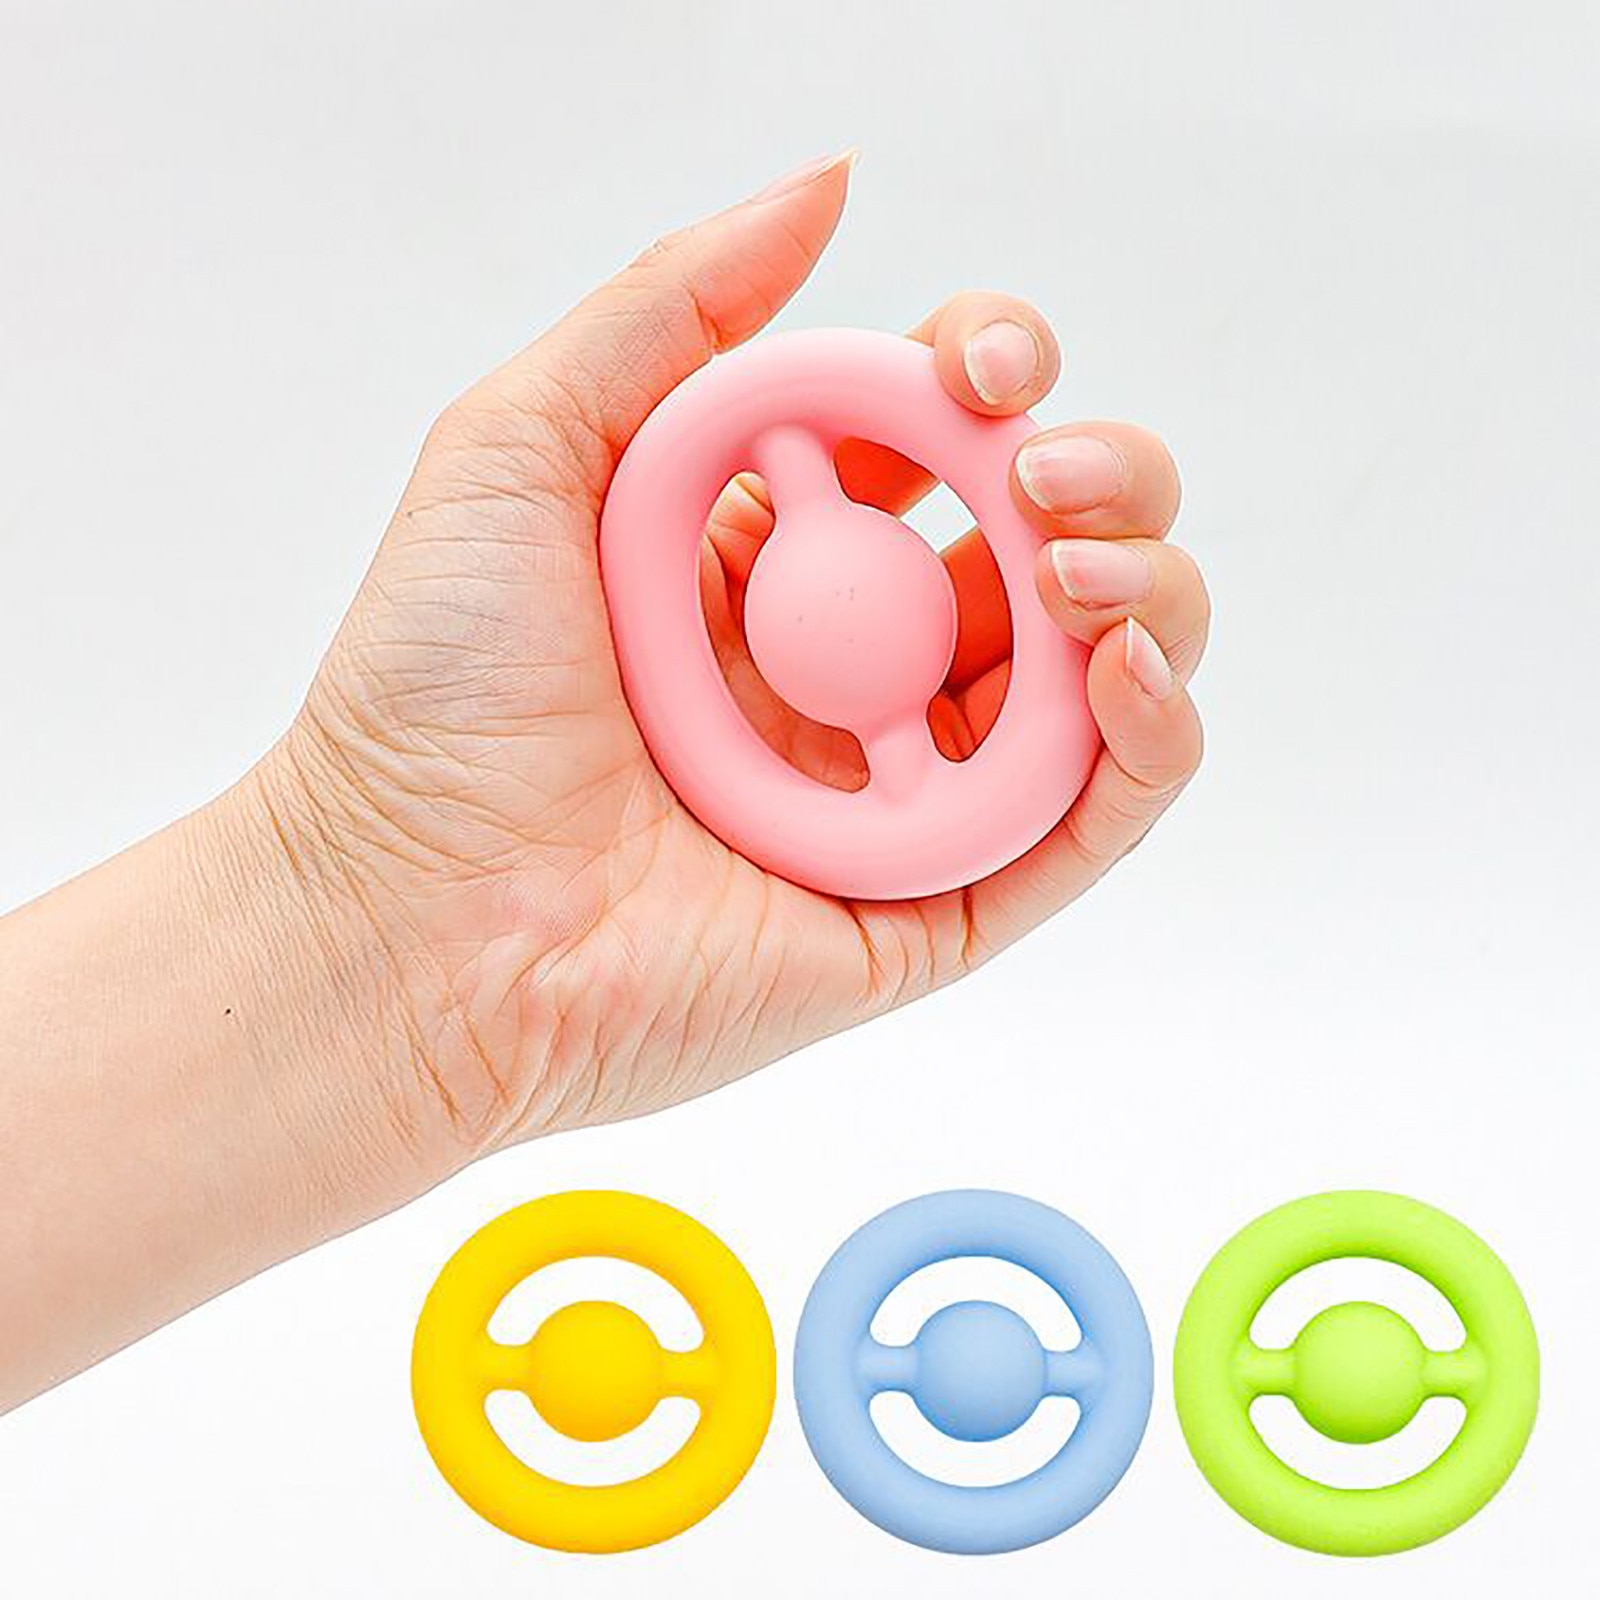 Squeeze Toys Snap Anxiety Snapperz Fidget Toy Autism Special Needs Stress Reliever Toys Extrusion Sensory Toy Антистресс enlarge